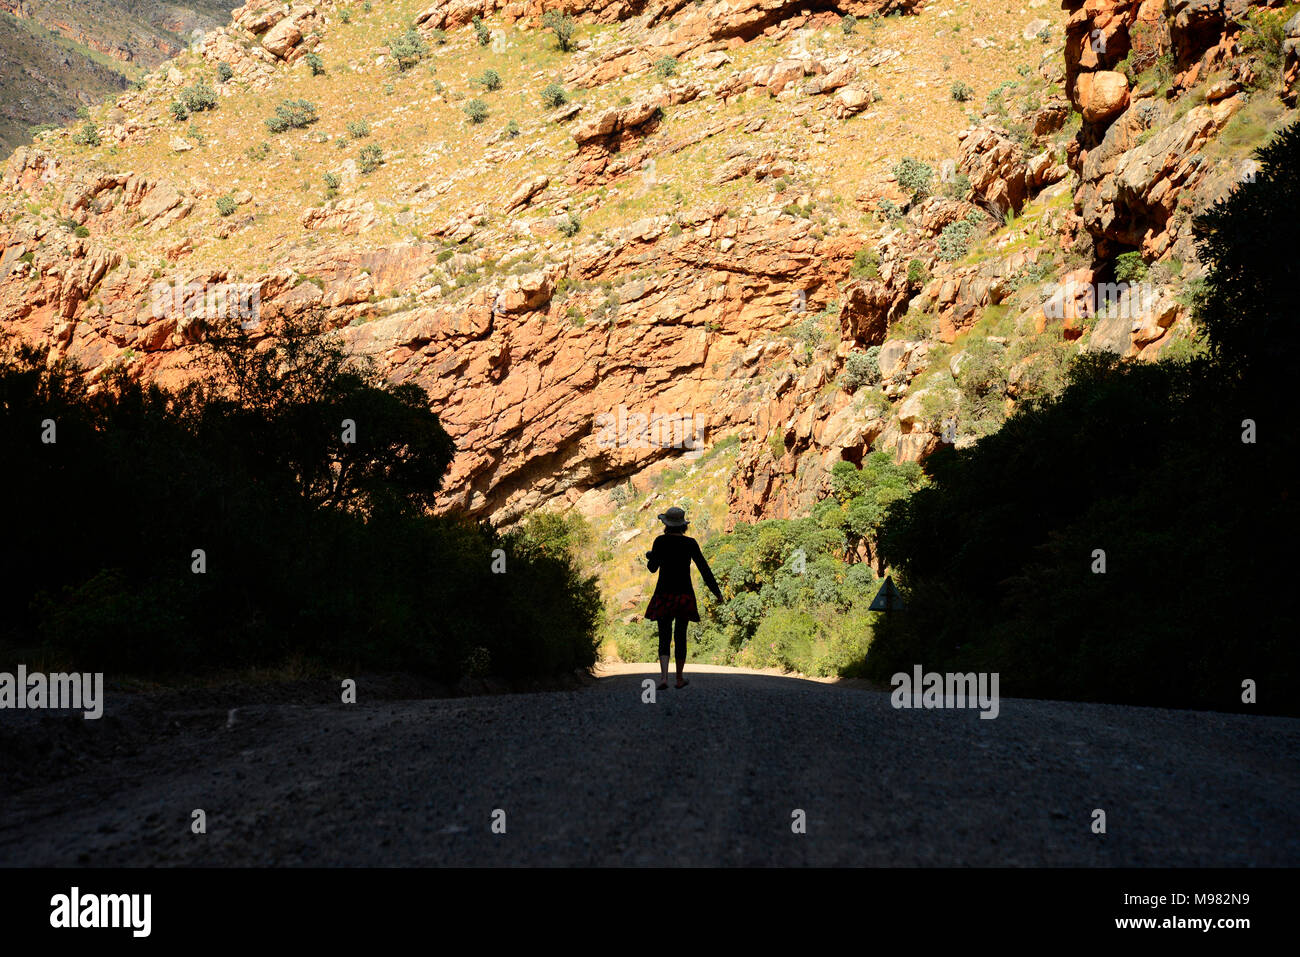 Karoo, South Africa. - Stock Image